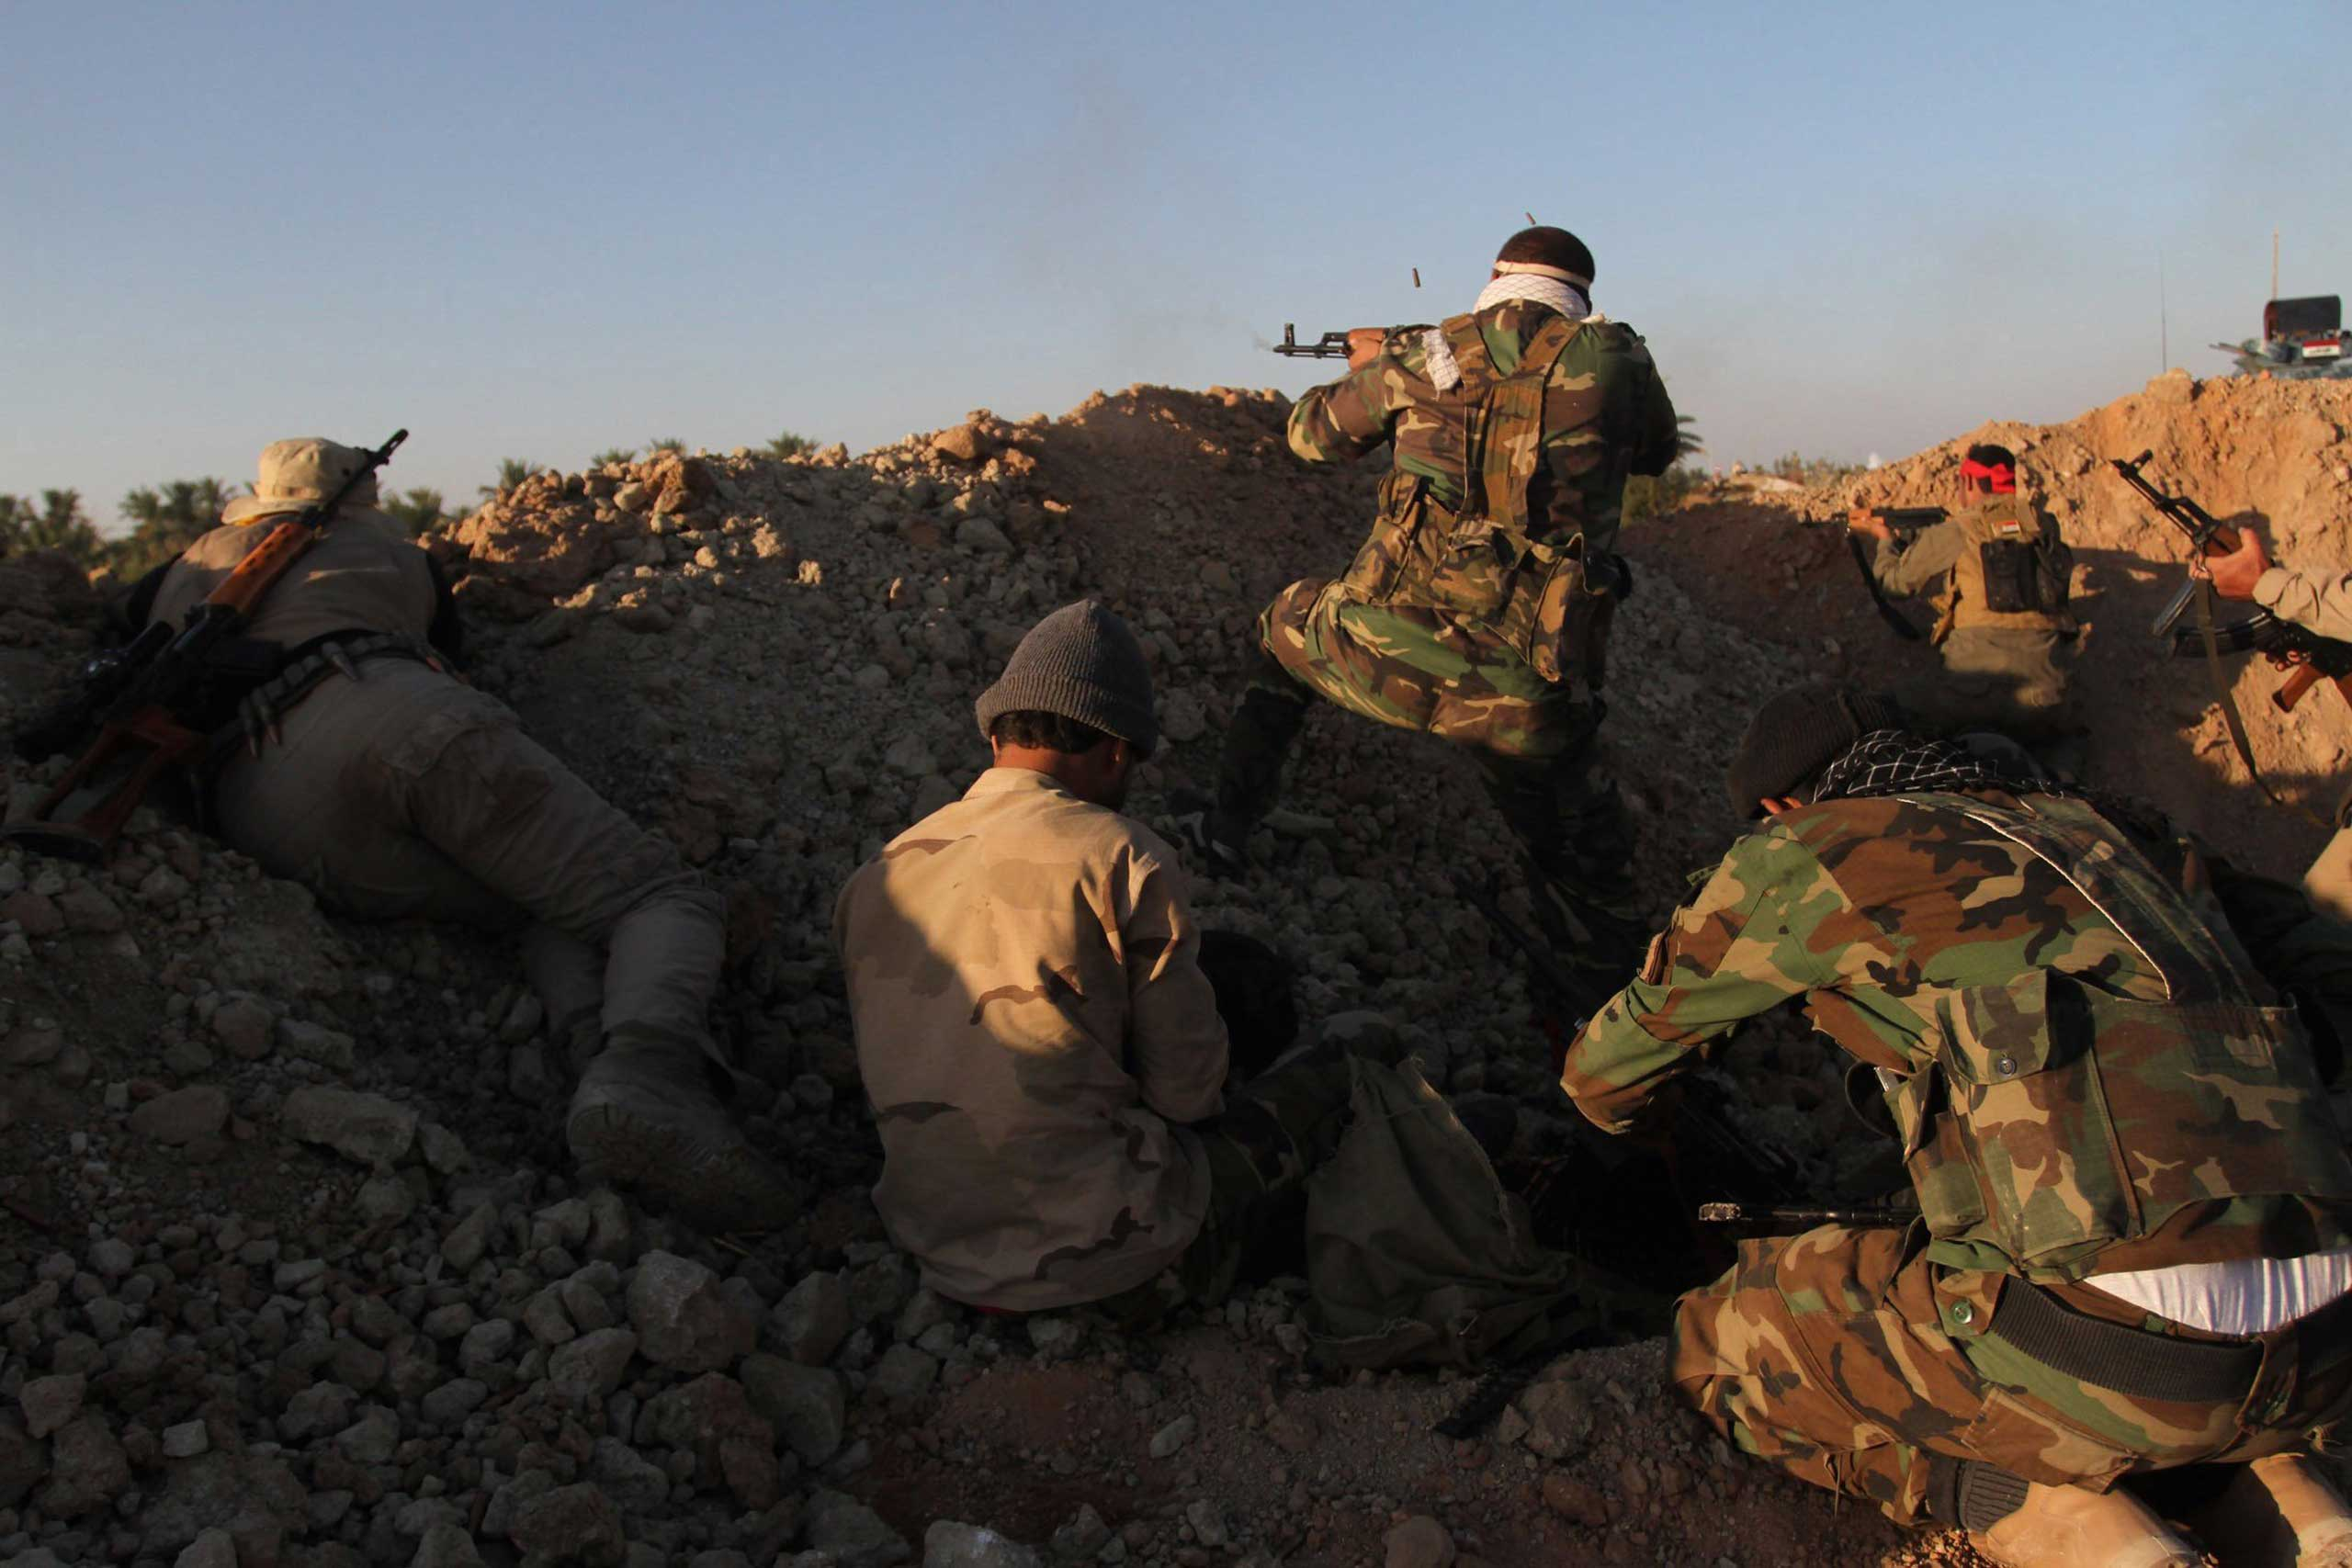 Iraqi government forces and Shiite militias launch an operation against Islamic State of Iraq and Syria (ISIS) militants to take control of Jurf al-Sakhar south of Baghdad, Iraq. on Oct. 25, 2014.